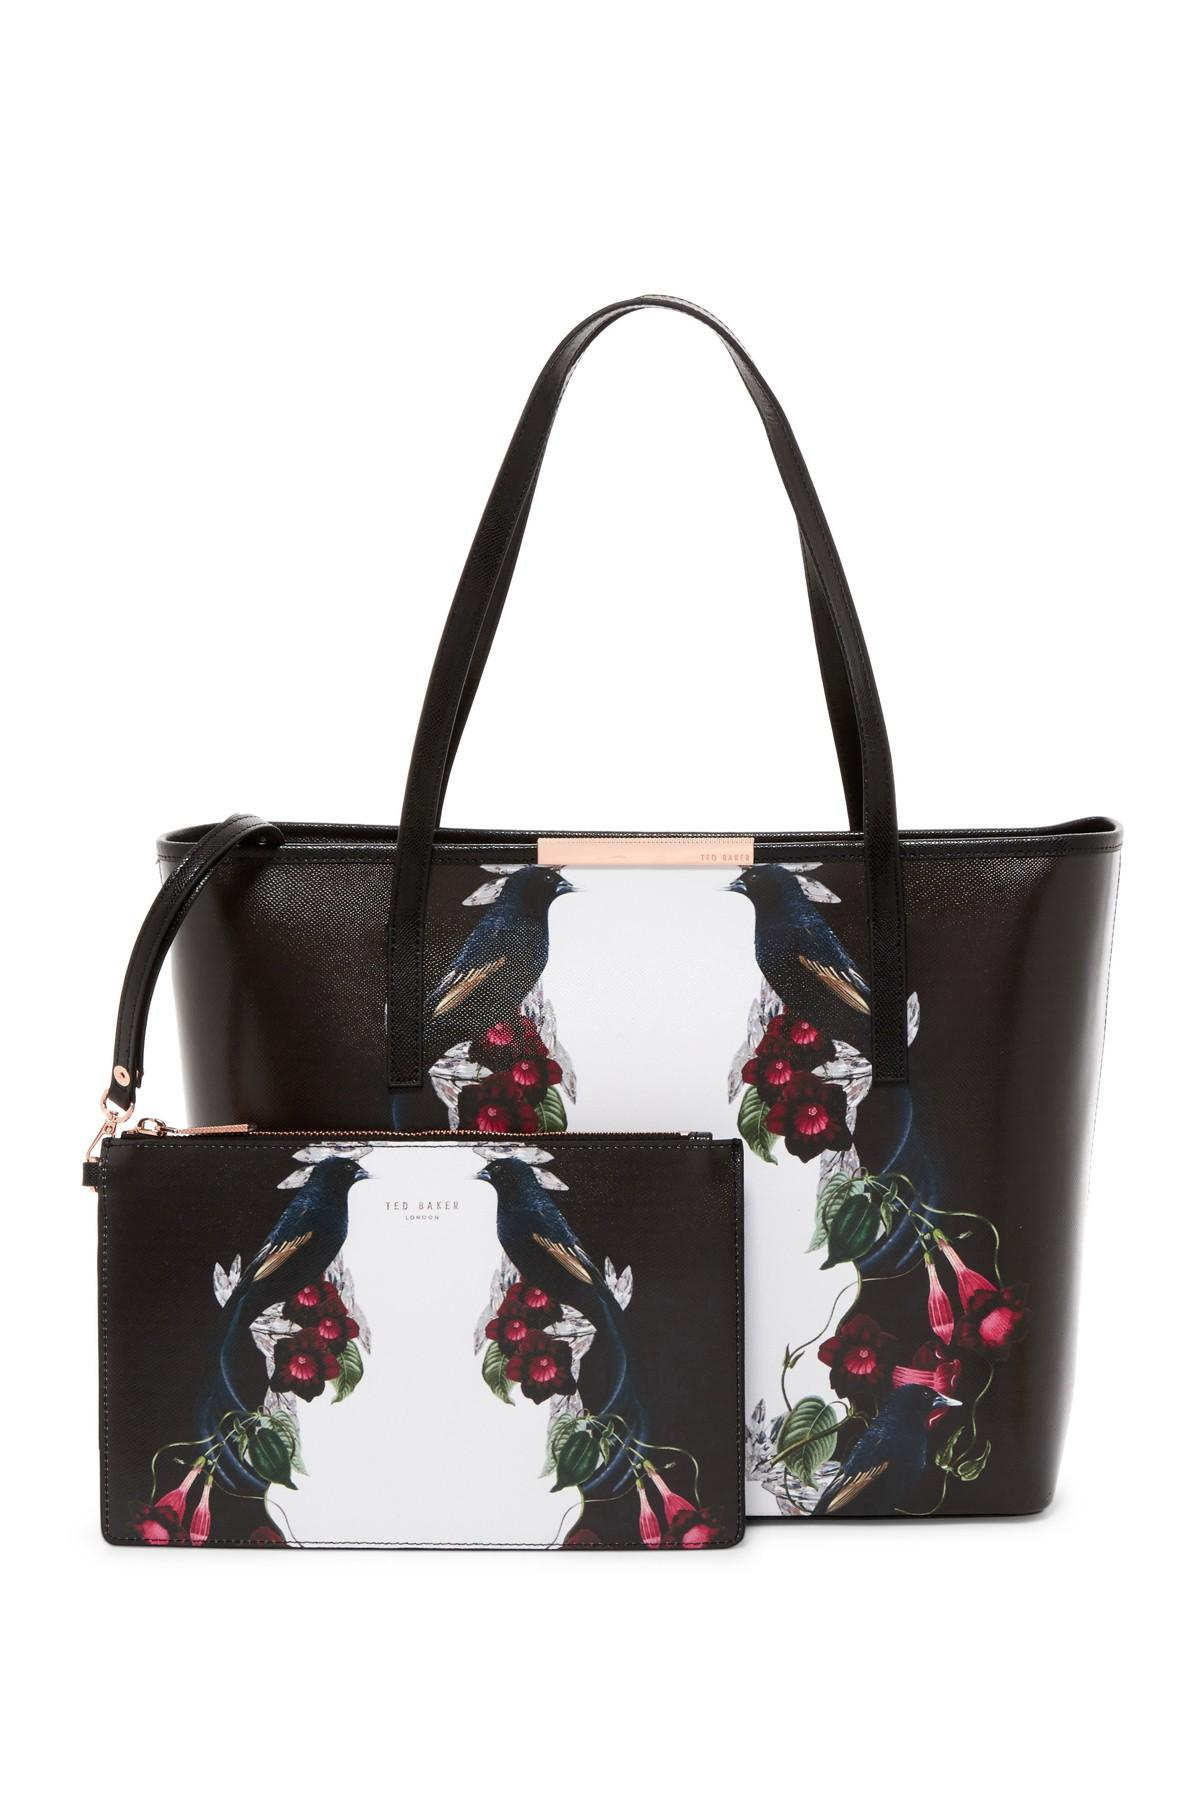 35178e6c2 Ted Baker Philippines - Ted Baker Bags for Women for sale - prices ...